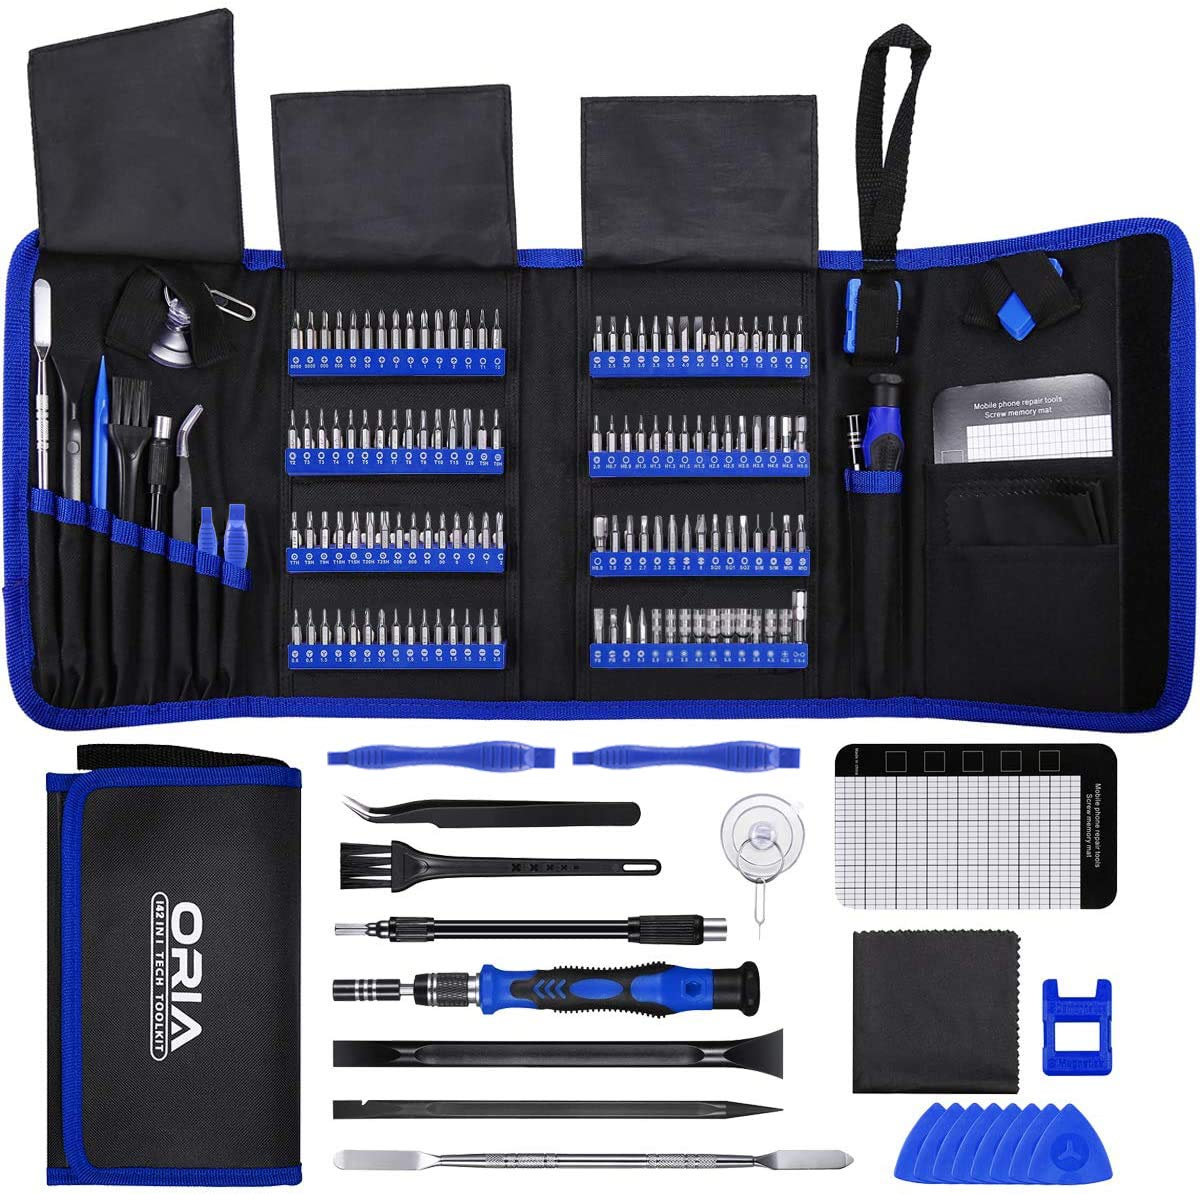 ORIA Precision Screwdriver Set (New Version), 142 in 1 with 120 Bits Mini Magnetic Screwdriver #Kit Repair Tool #Kit with Portable Bag for Electronic PC iPhone MacBook Jewelers Fathers Day Gifts  More: https://t.co/aOYp5aVCyC  #Durable #Electronics #RepairKits #SaverDeal https://t.co/O9ce45sPhm